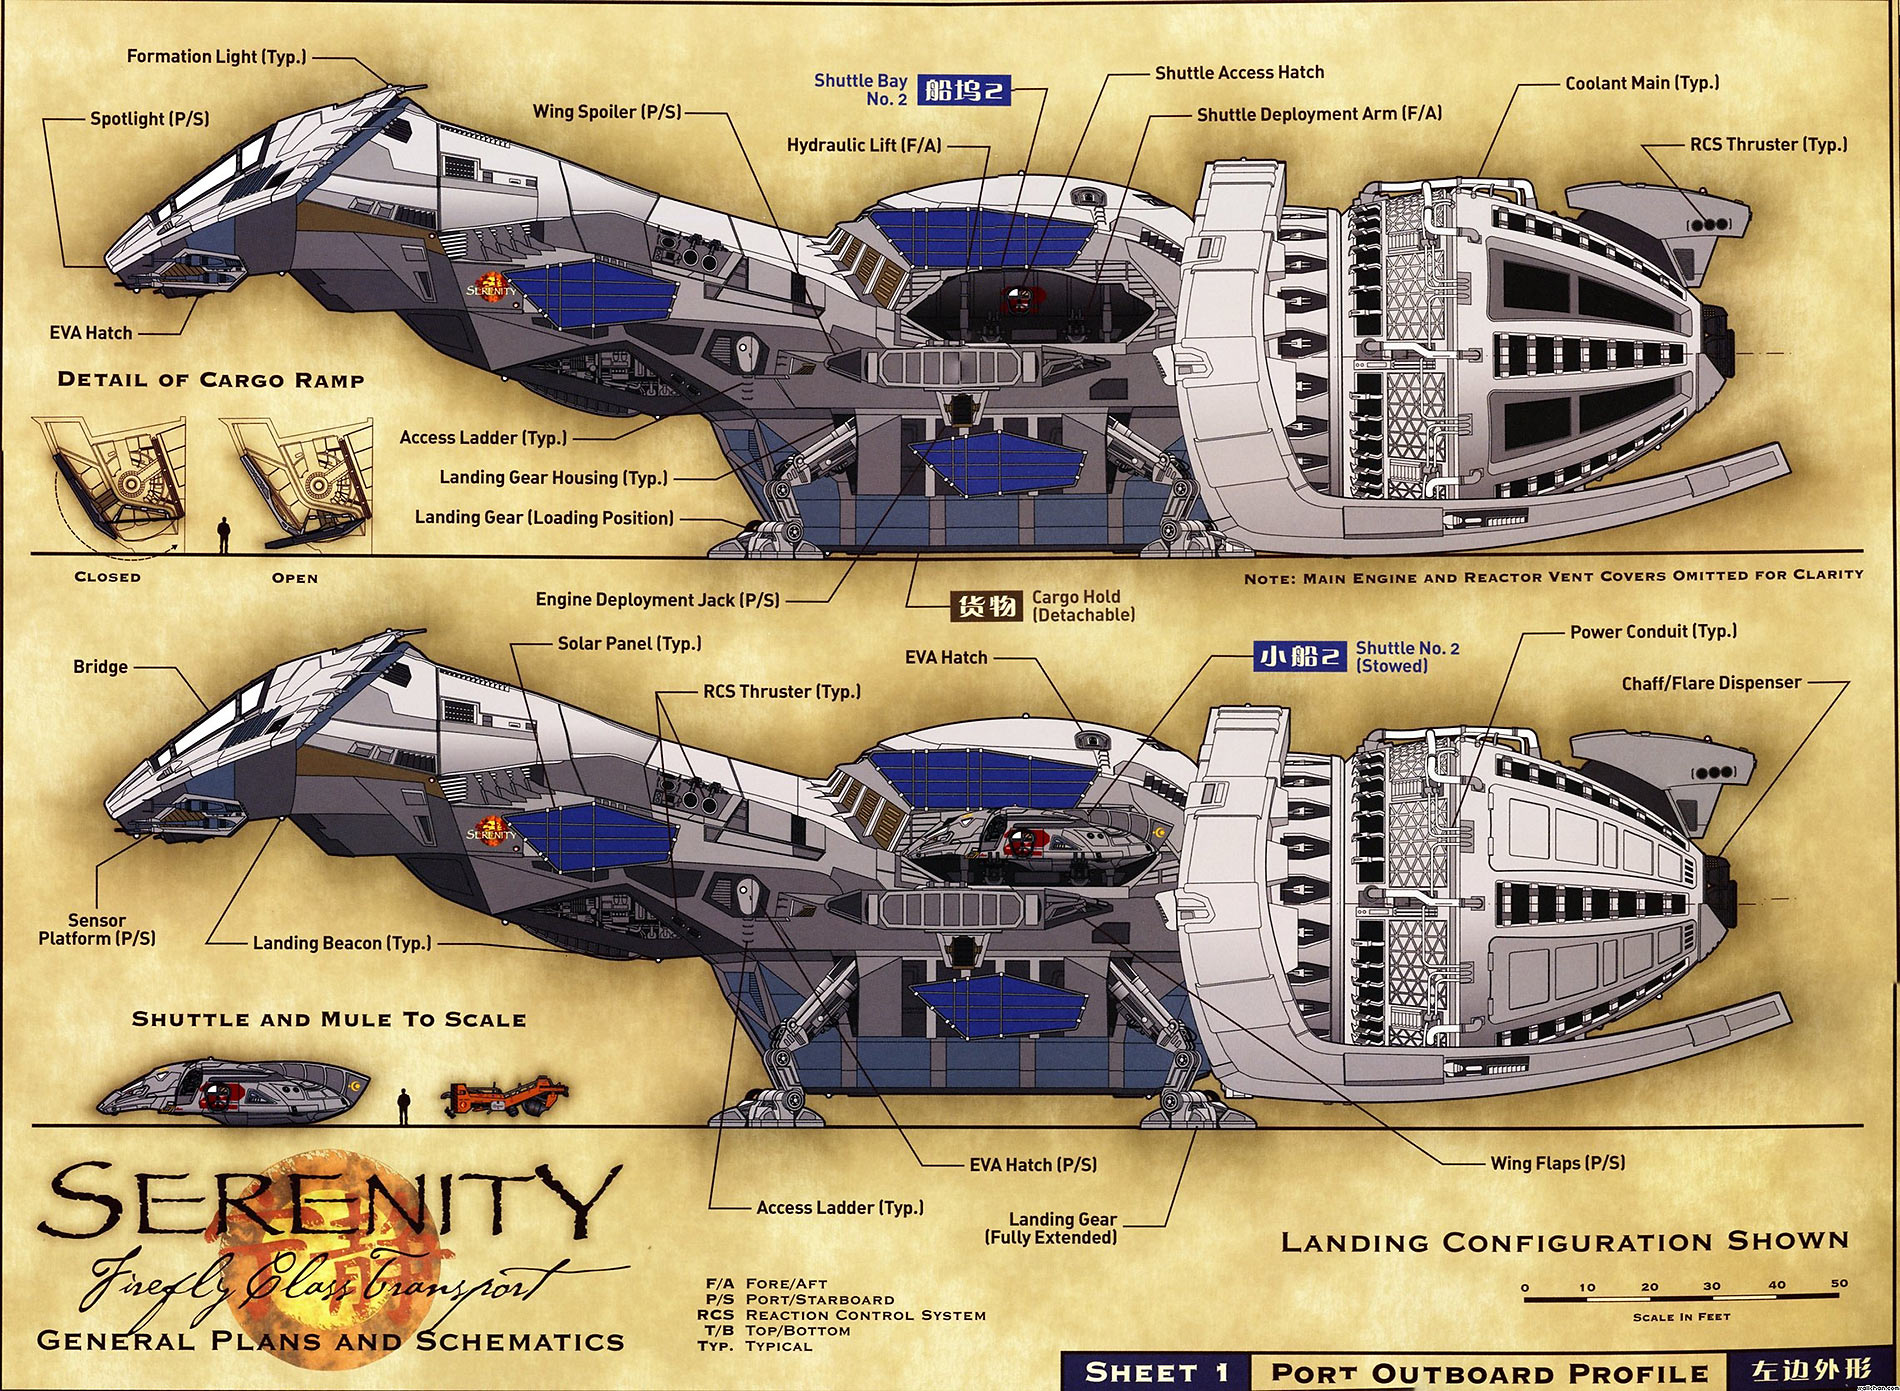 http://hiking.ru/wp-content/uploads/2013/01/Firefly-Ship.jpg